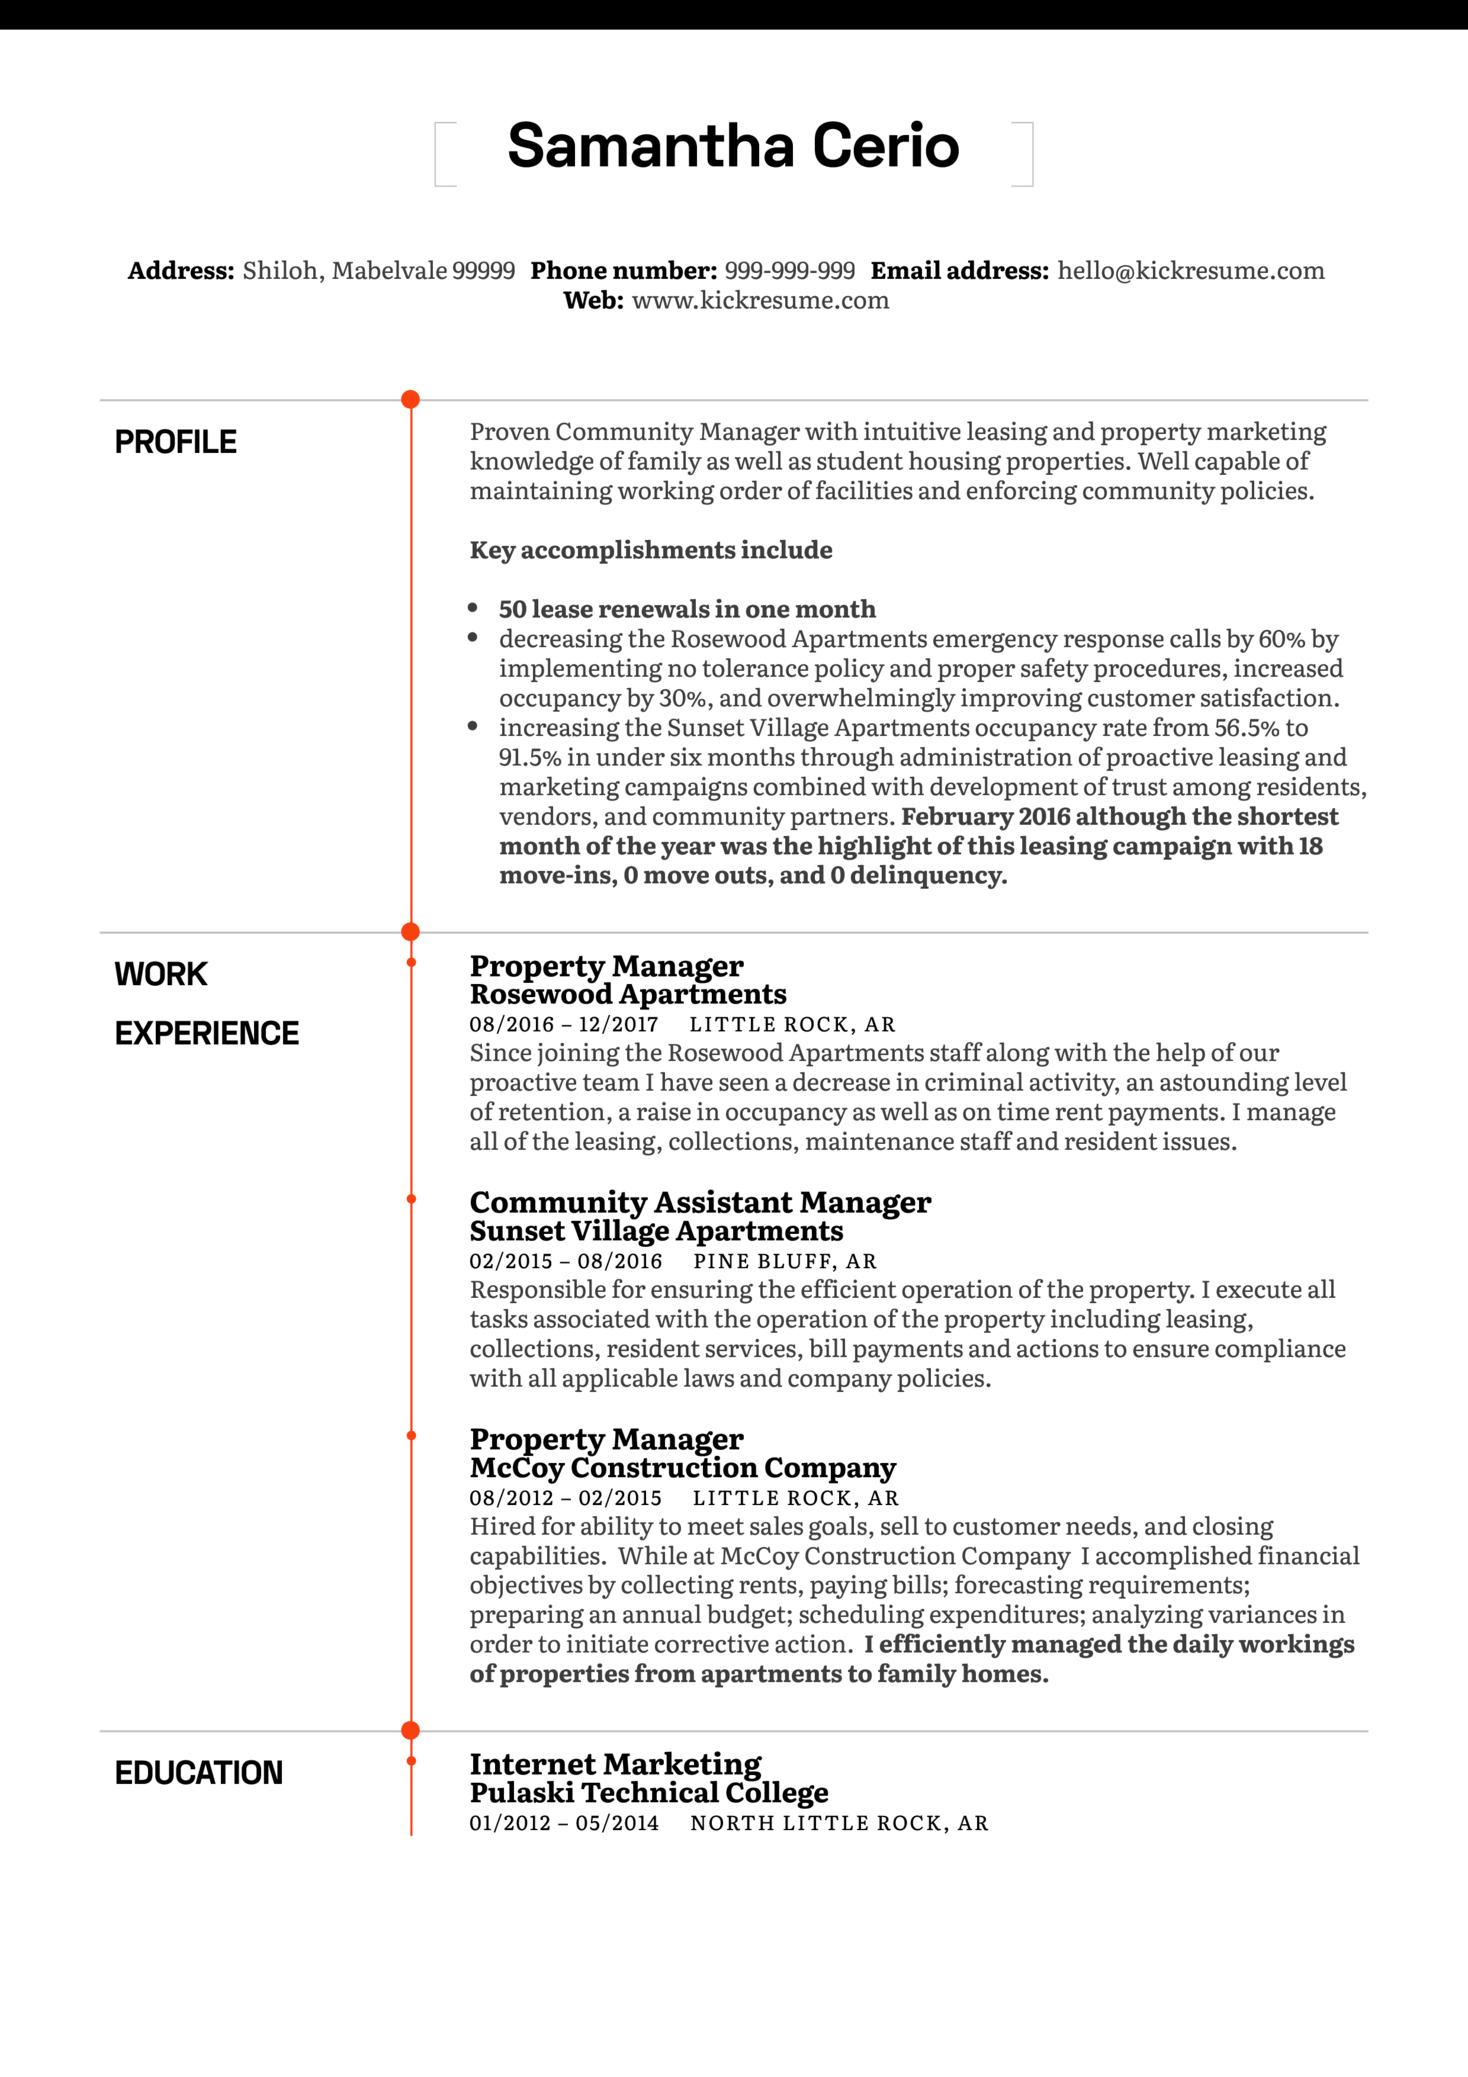 Property Manager CV Example (Teil 1)